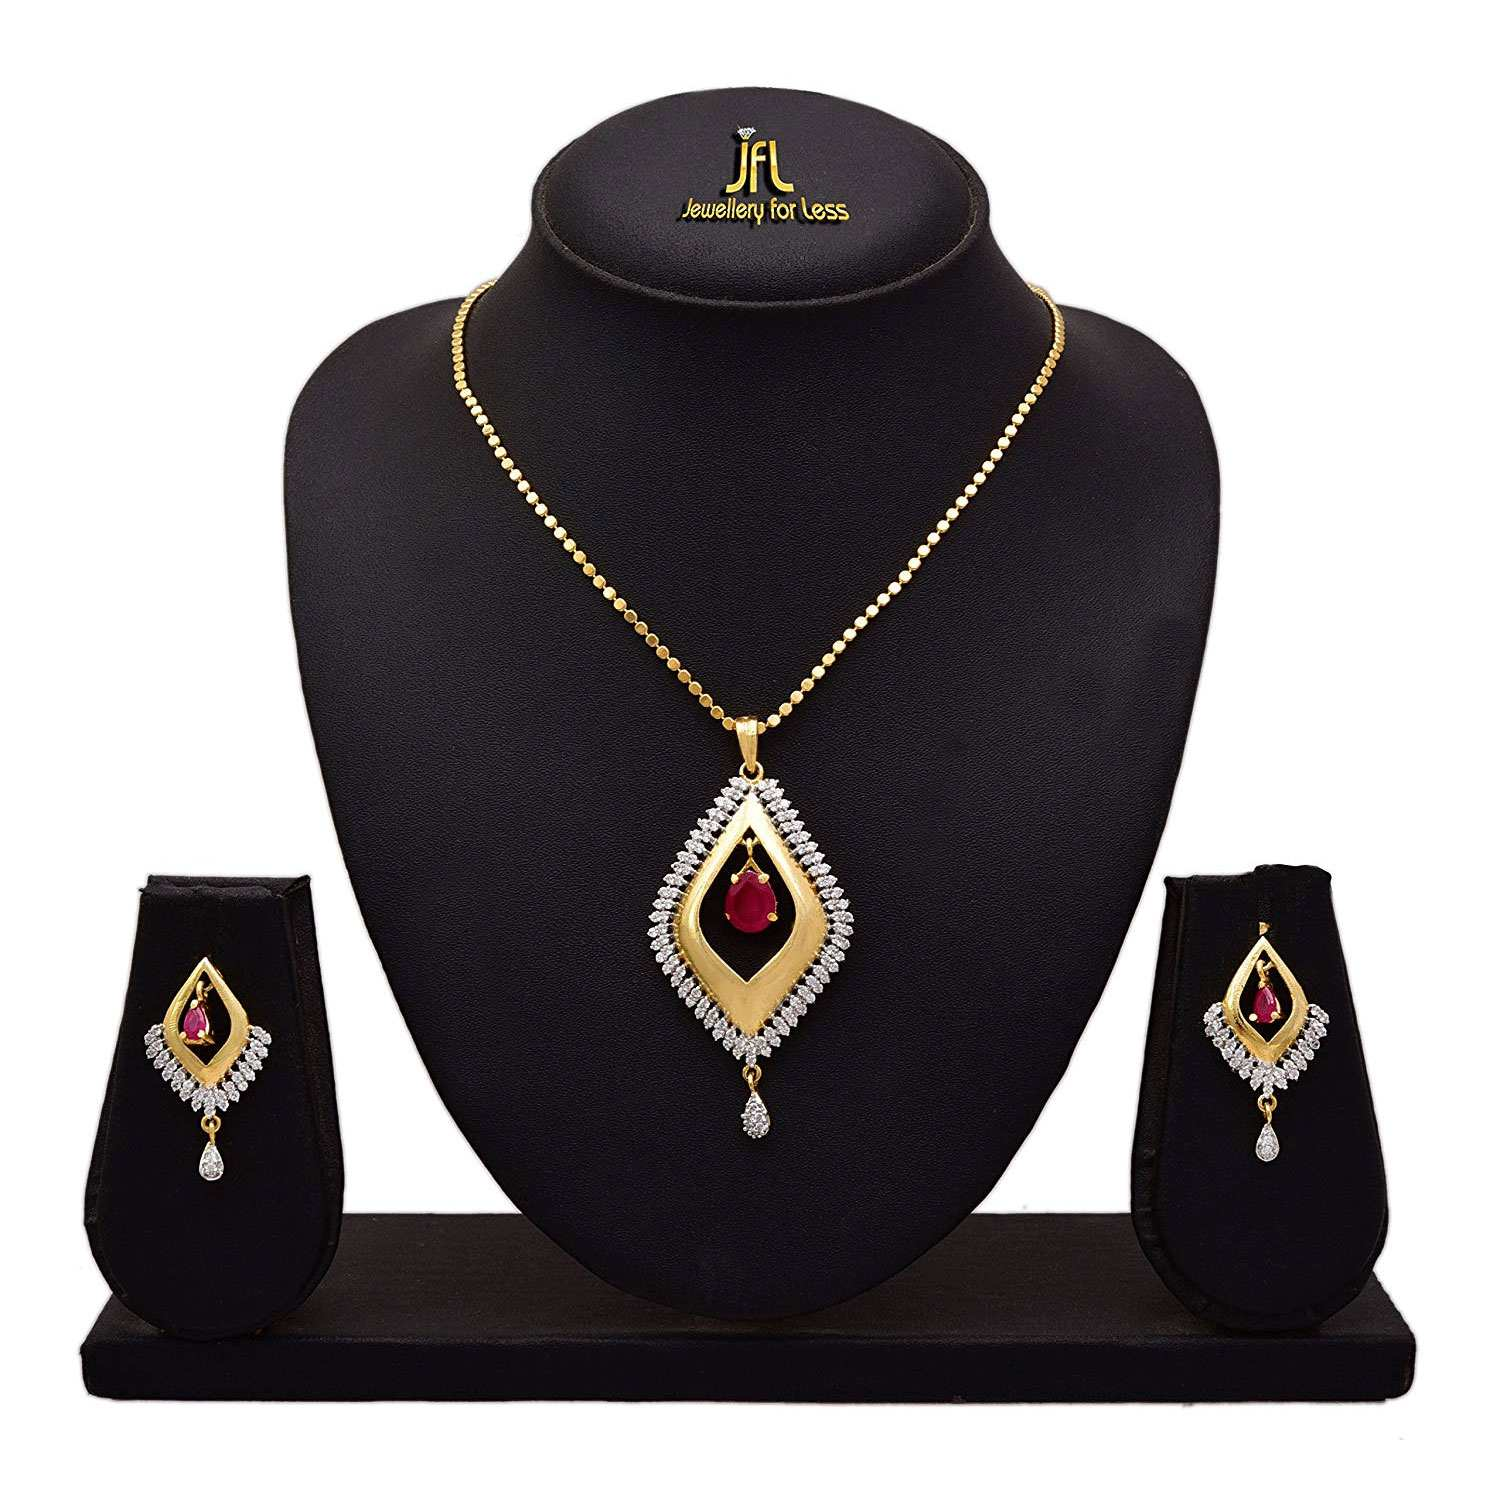 JFL - Jewellery for Less Fusion Ethnic One Gram Gold Plated Cz American Diamond Designer Pendant Set for Women & Girls